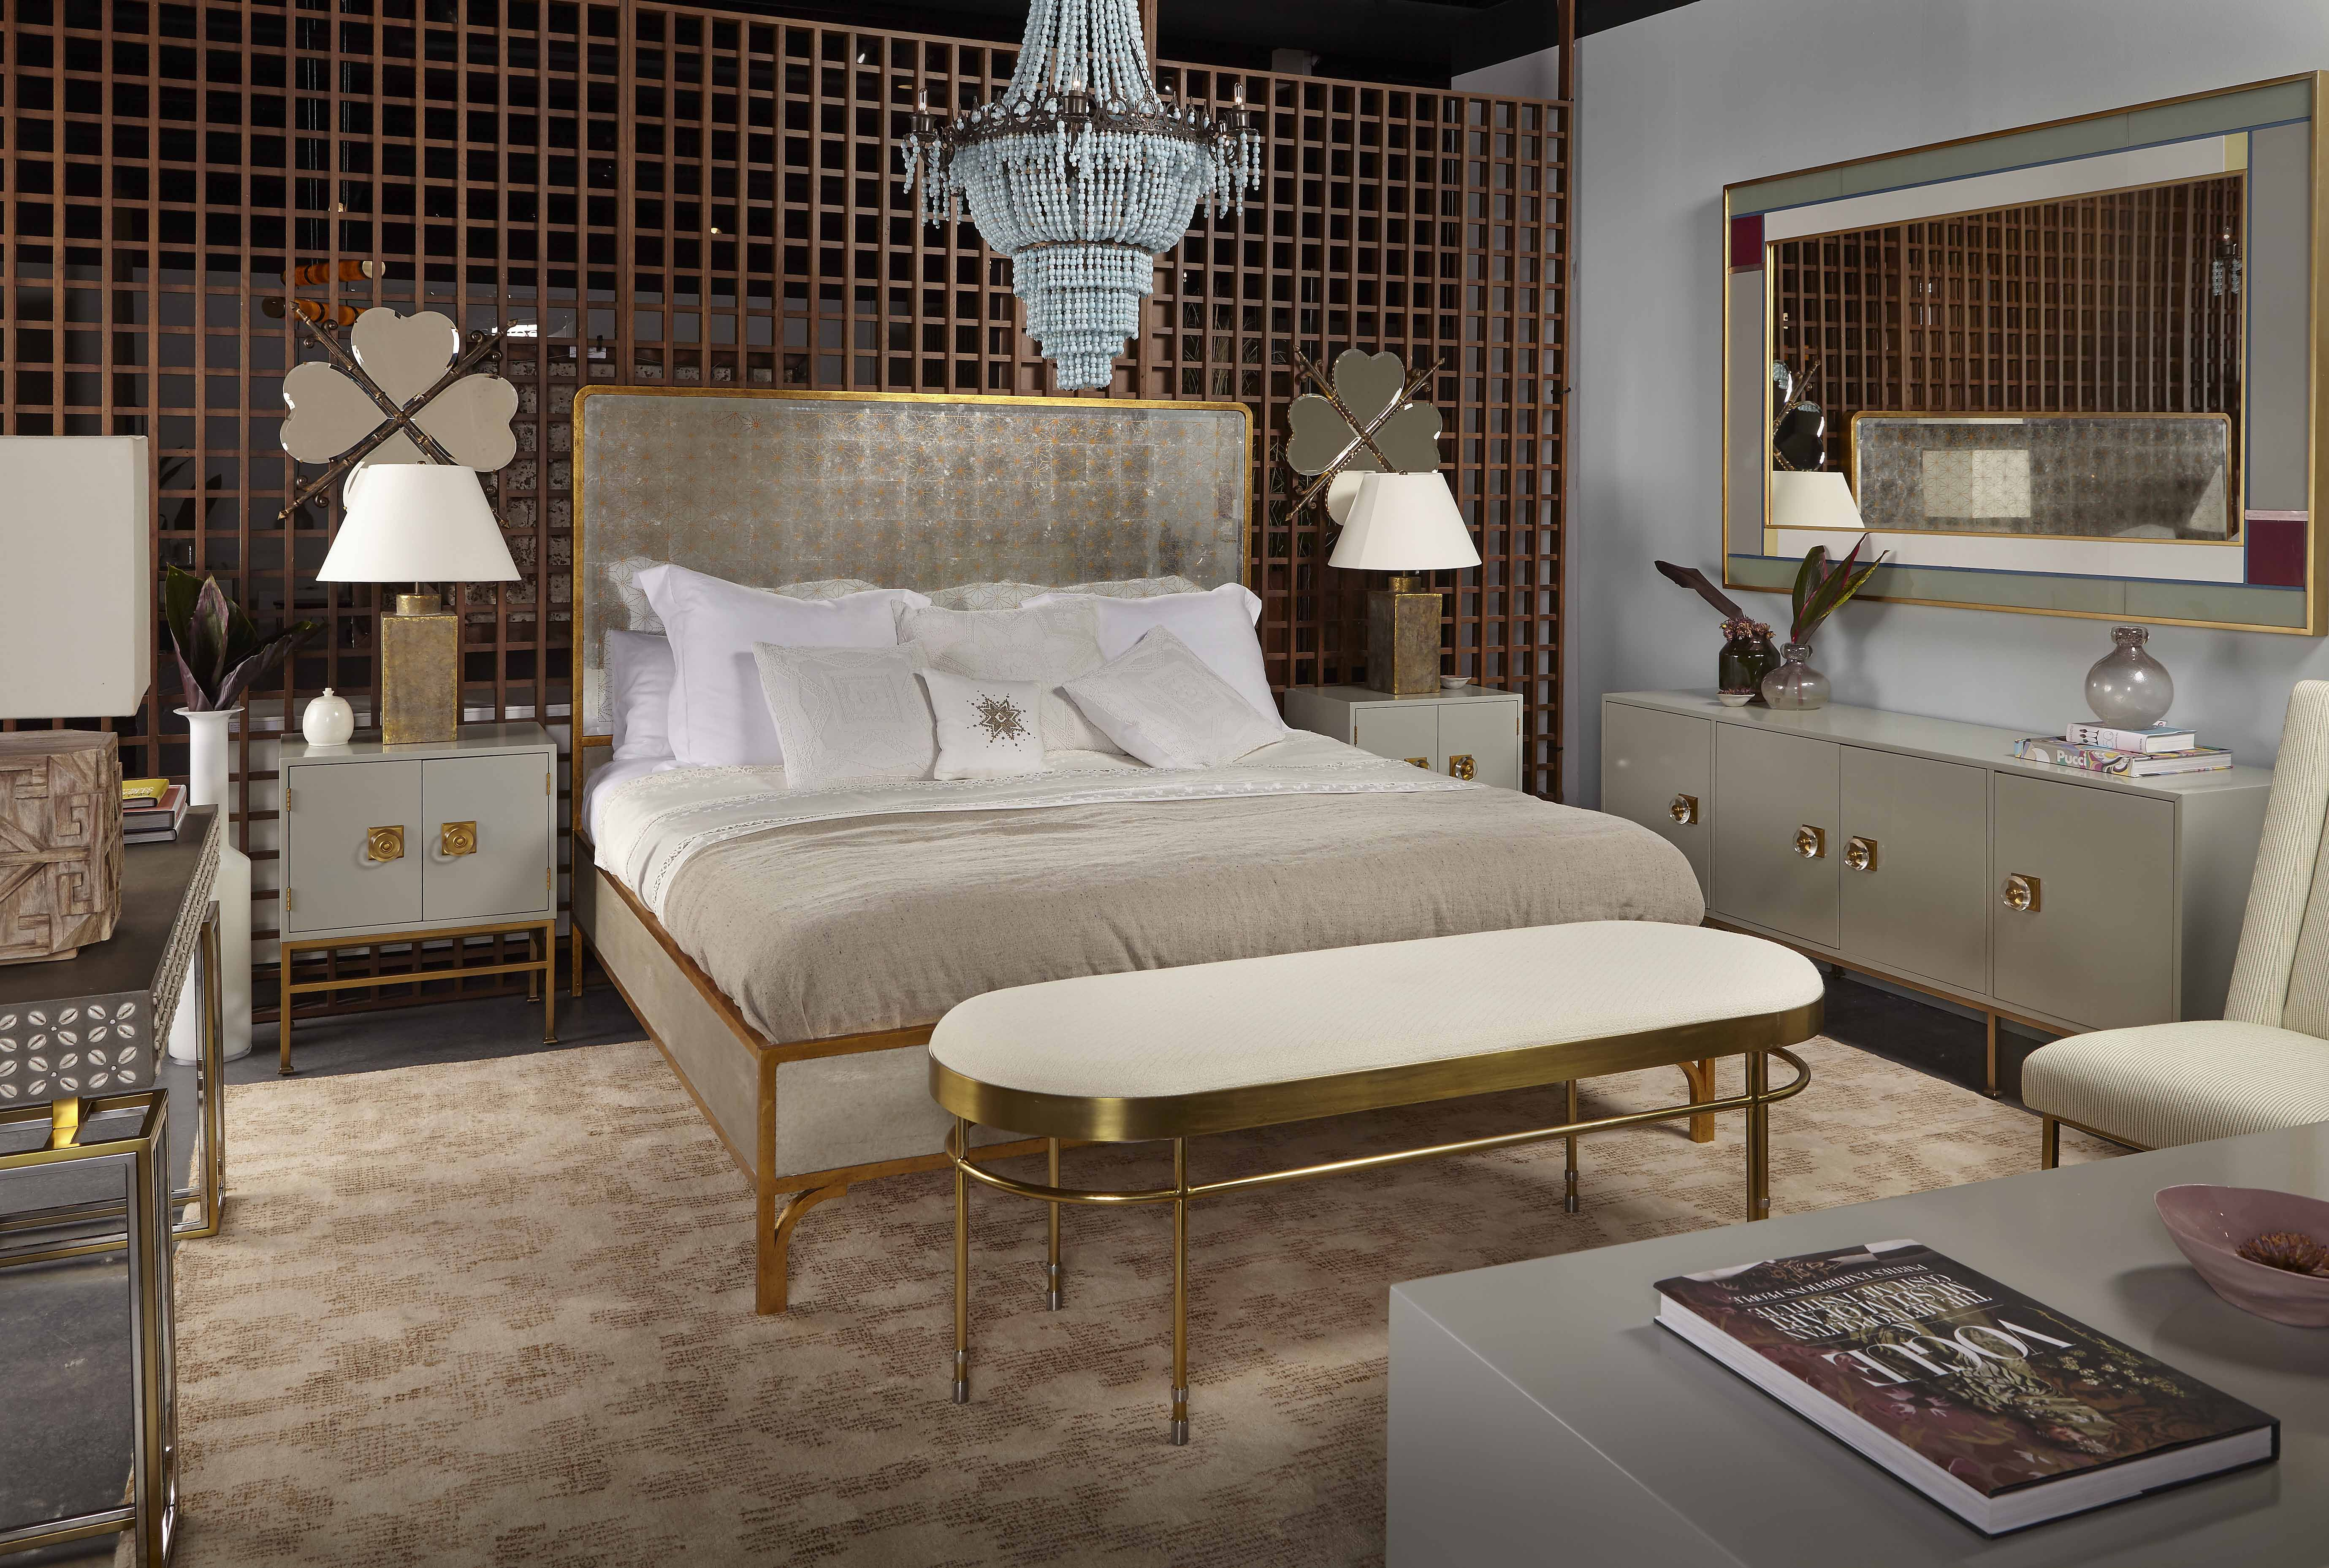 Sublime Slumber Awaits In This Sophisticated Bedroom By Boyd Featuring The Gilded Star Mirror Bed And Formal Bed Centre Sophisticated Bedroom Bedroom Interior